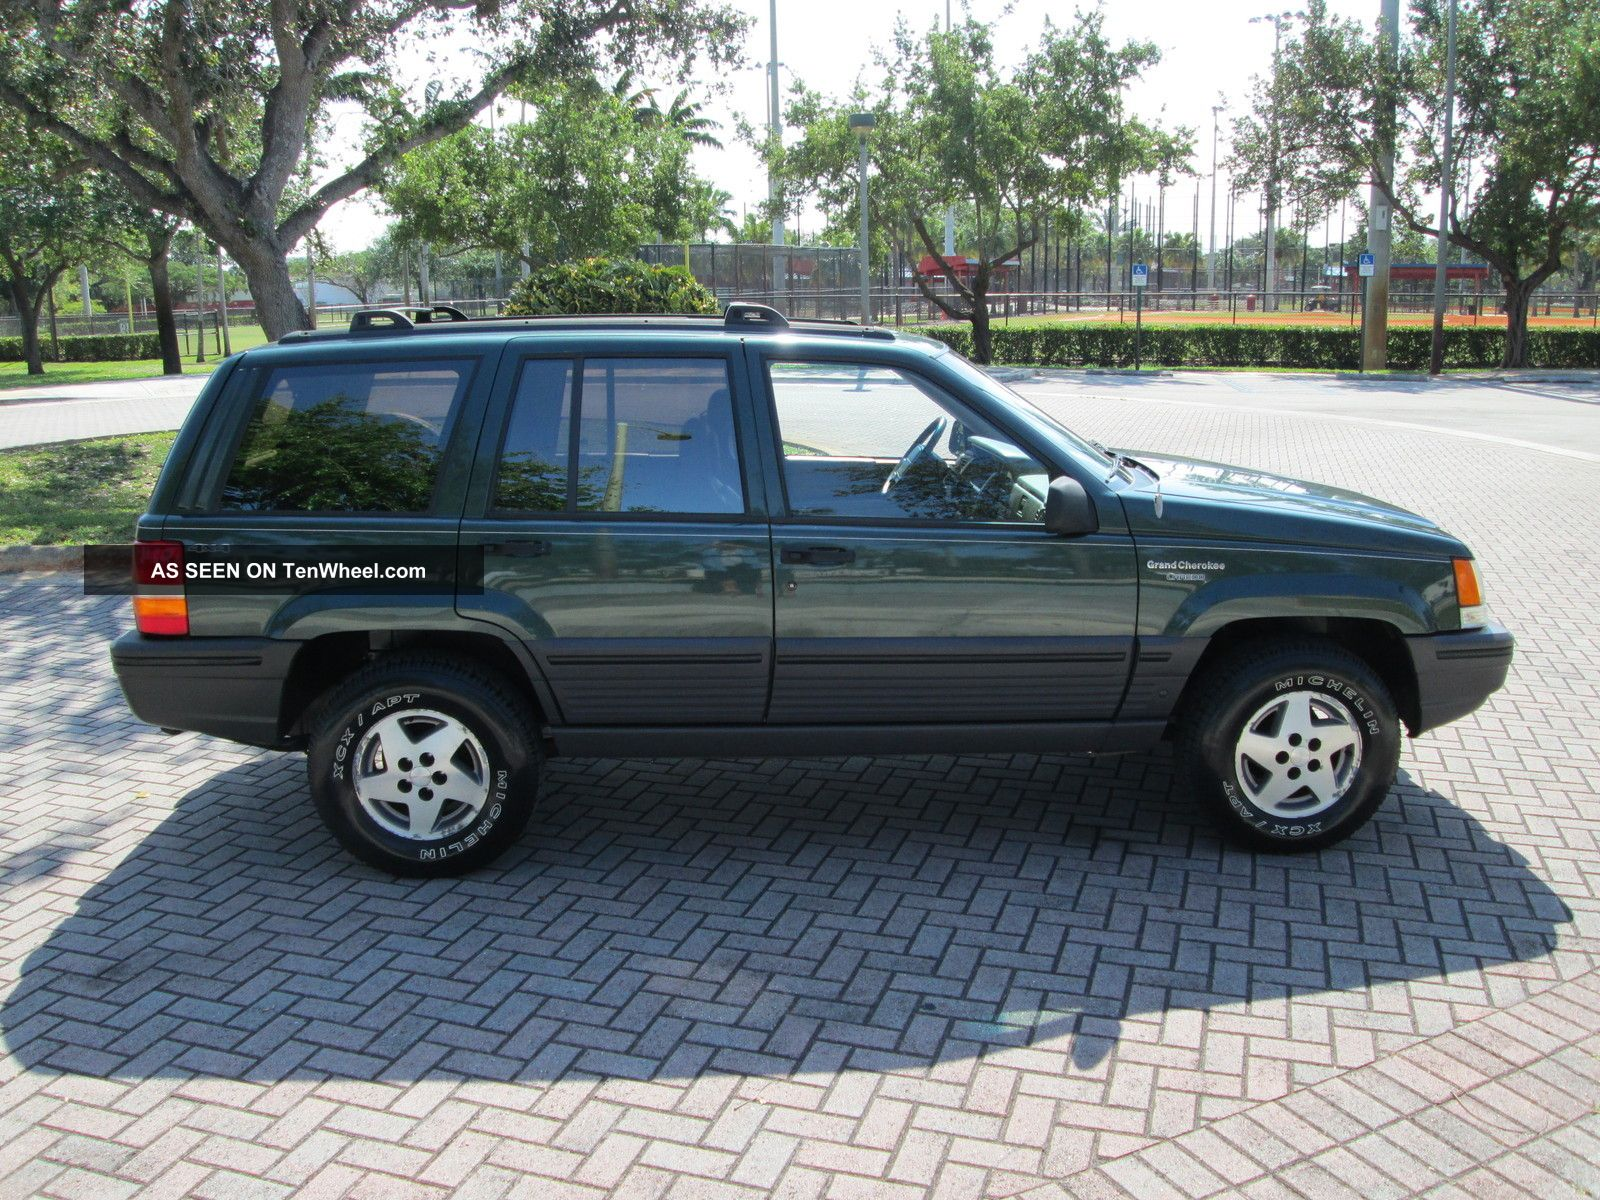 Jeep Grand Cherokee Laredo X Lgw on 1994 Chevrolet Blazer Seats